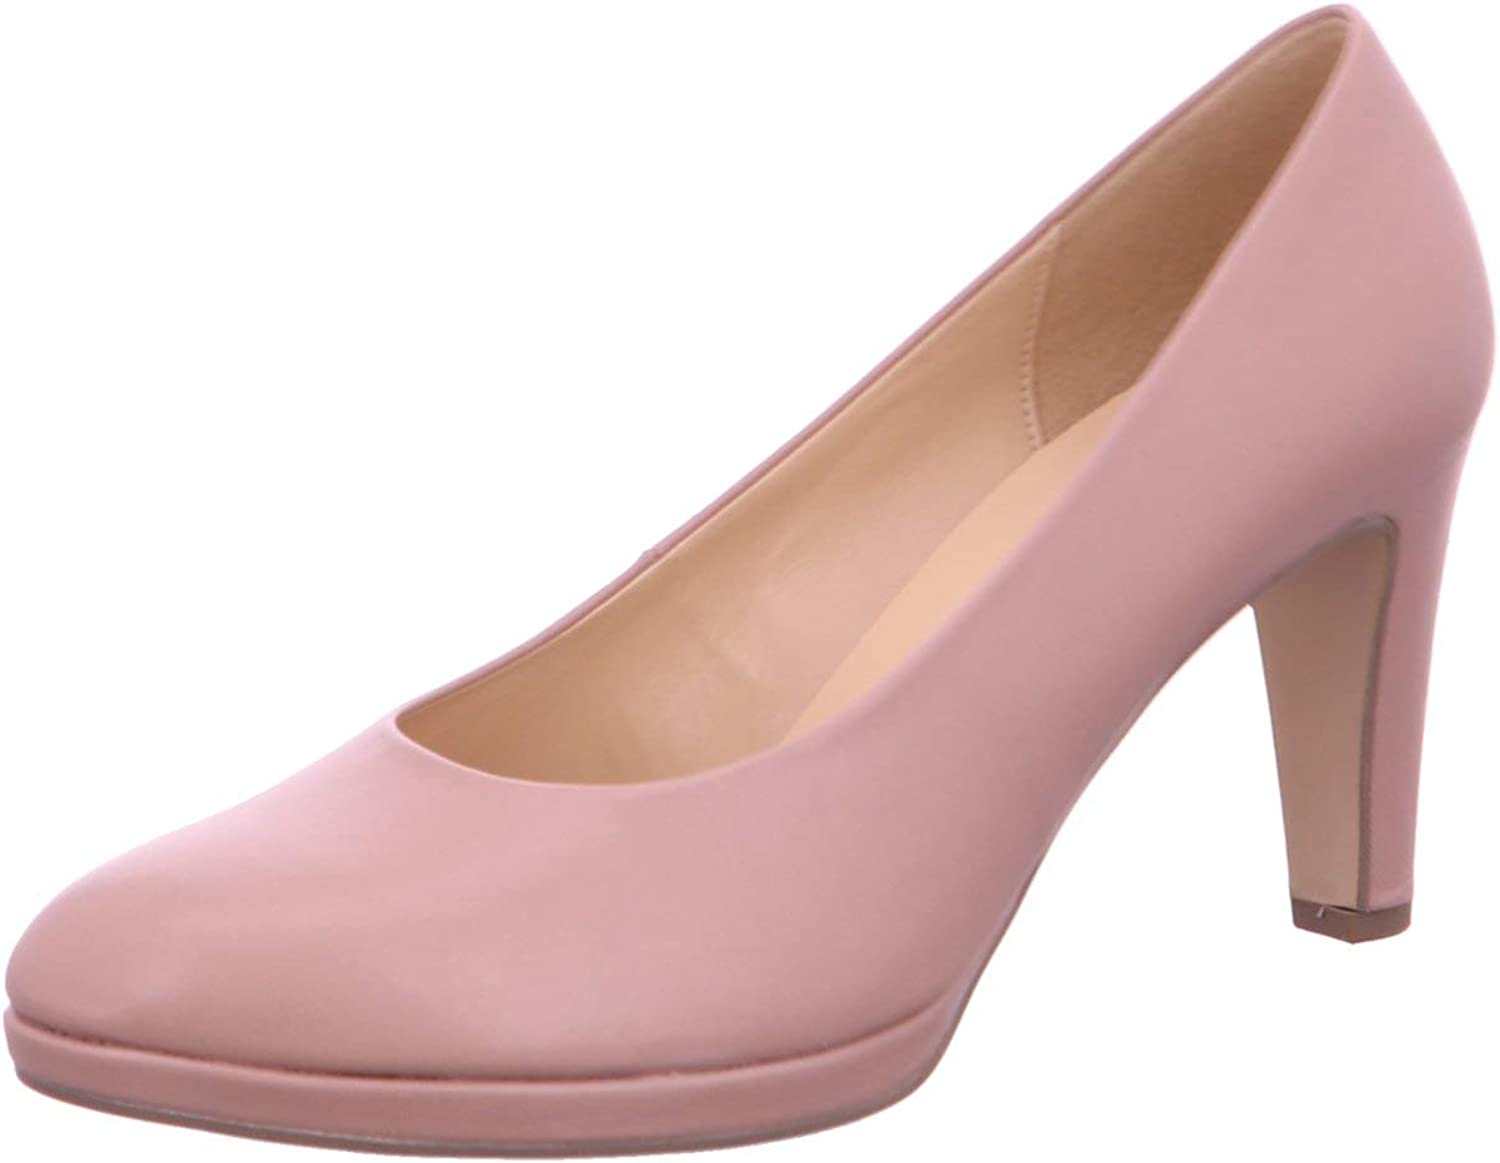 Gabor Damen Pumps 61.270.84 Rosa | Tragen wider 582664